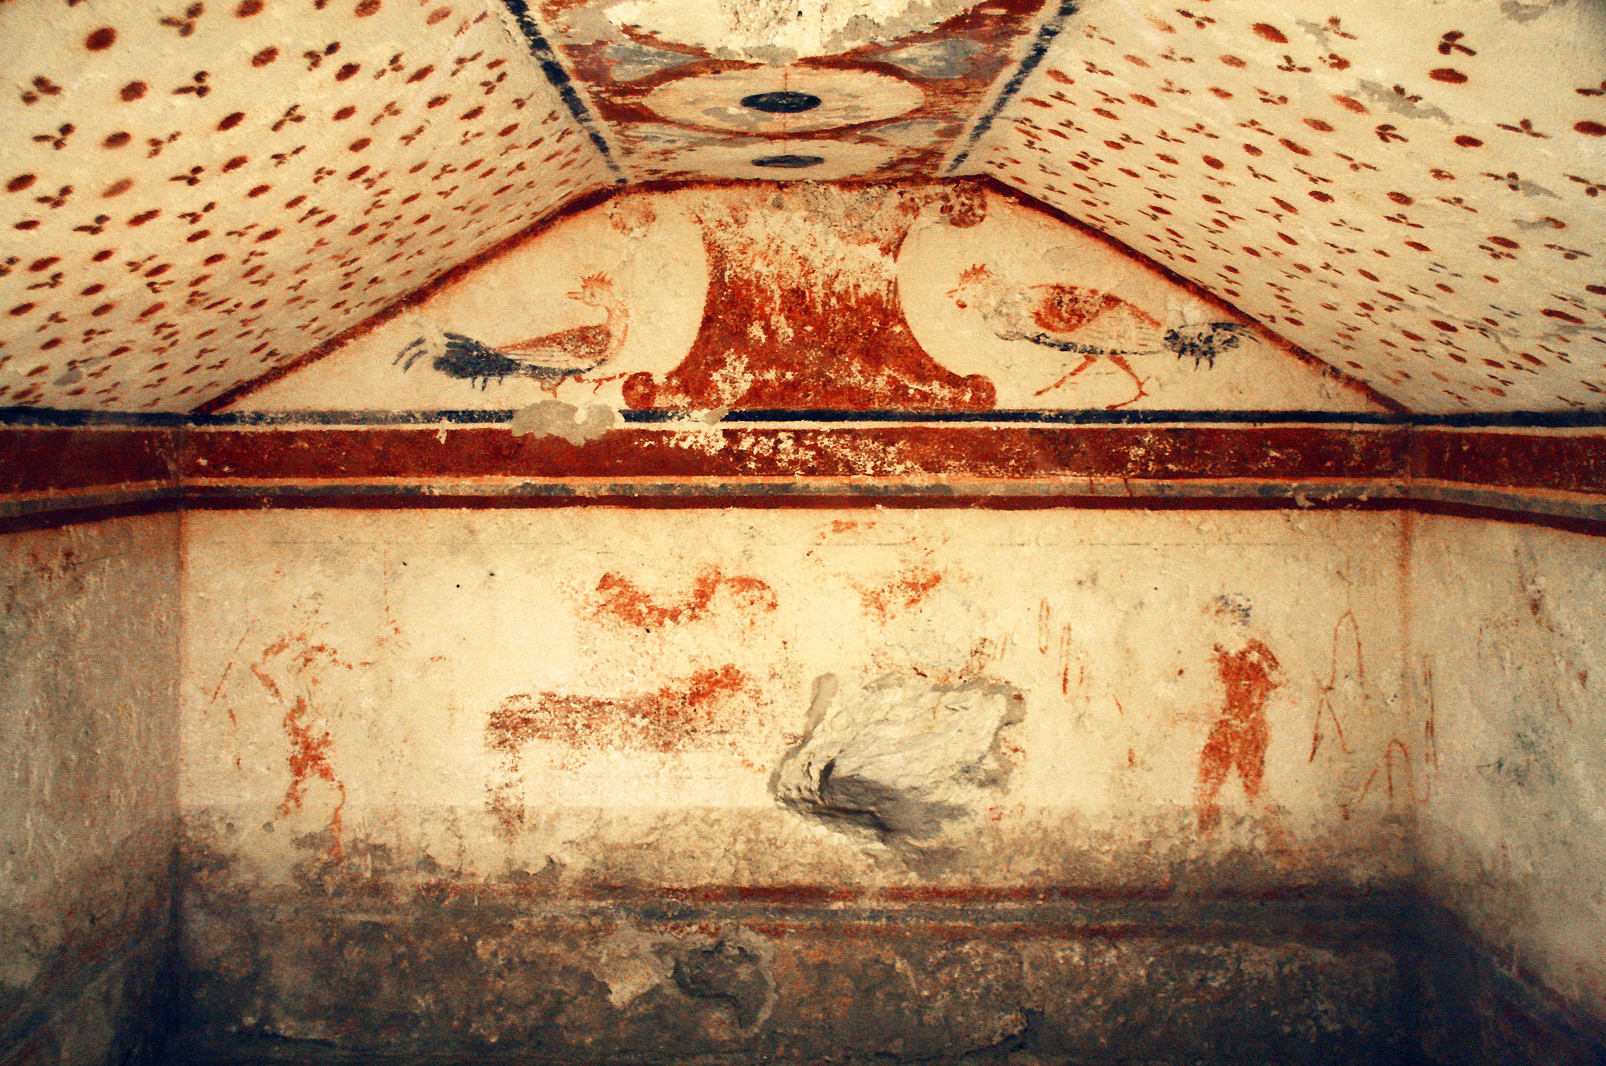 """Tomba dei Fiorellini"", 475-450 BC. You can see two red and black cockerels facing each other, ready to fight. Below them there is a banqueting couple."